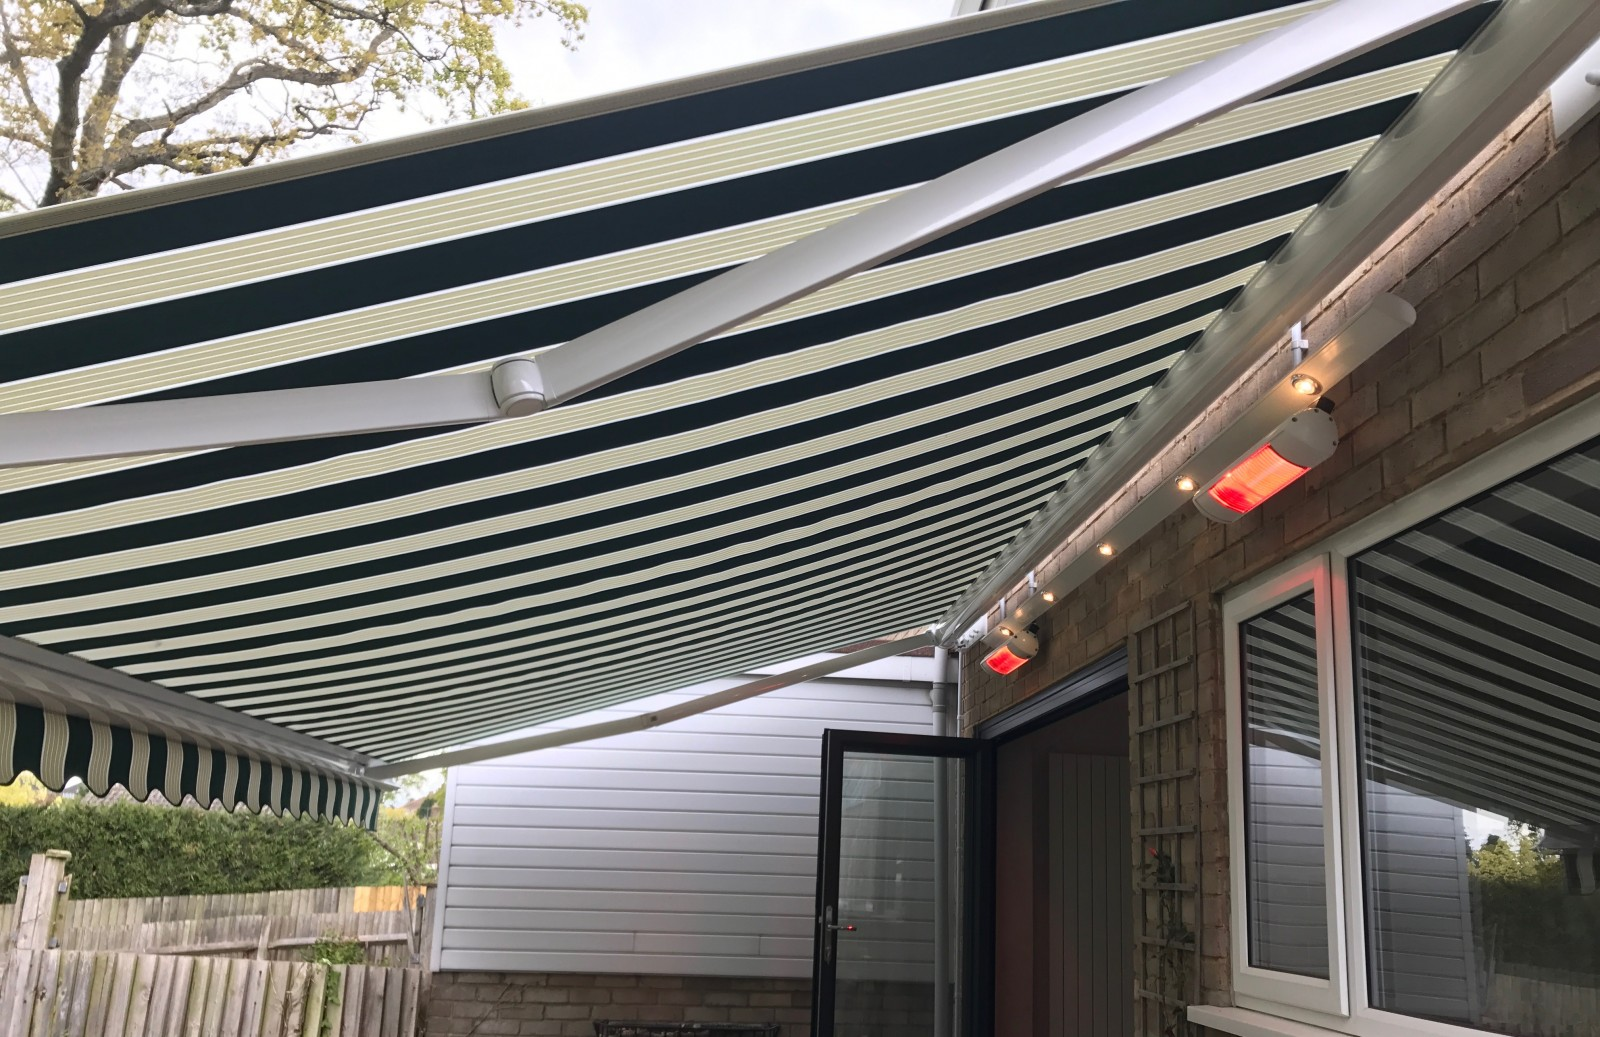 Electric Awning with Heaters and Light-track Southampton ...